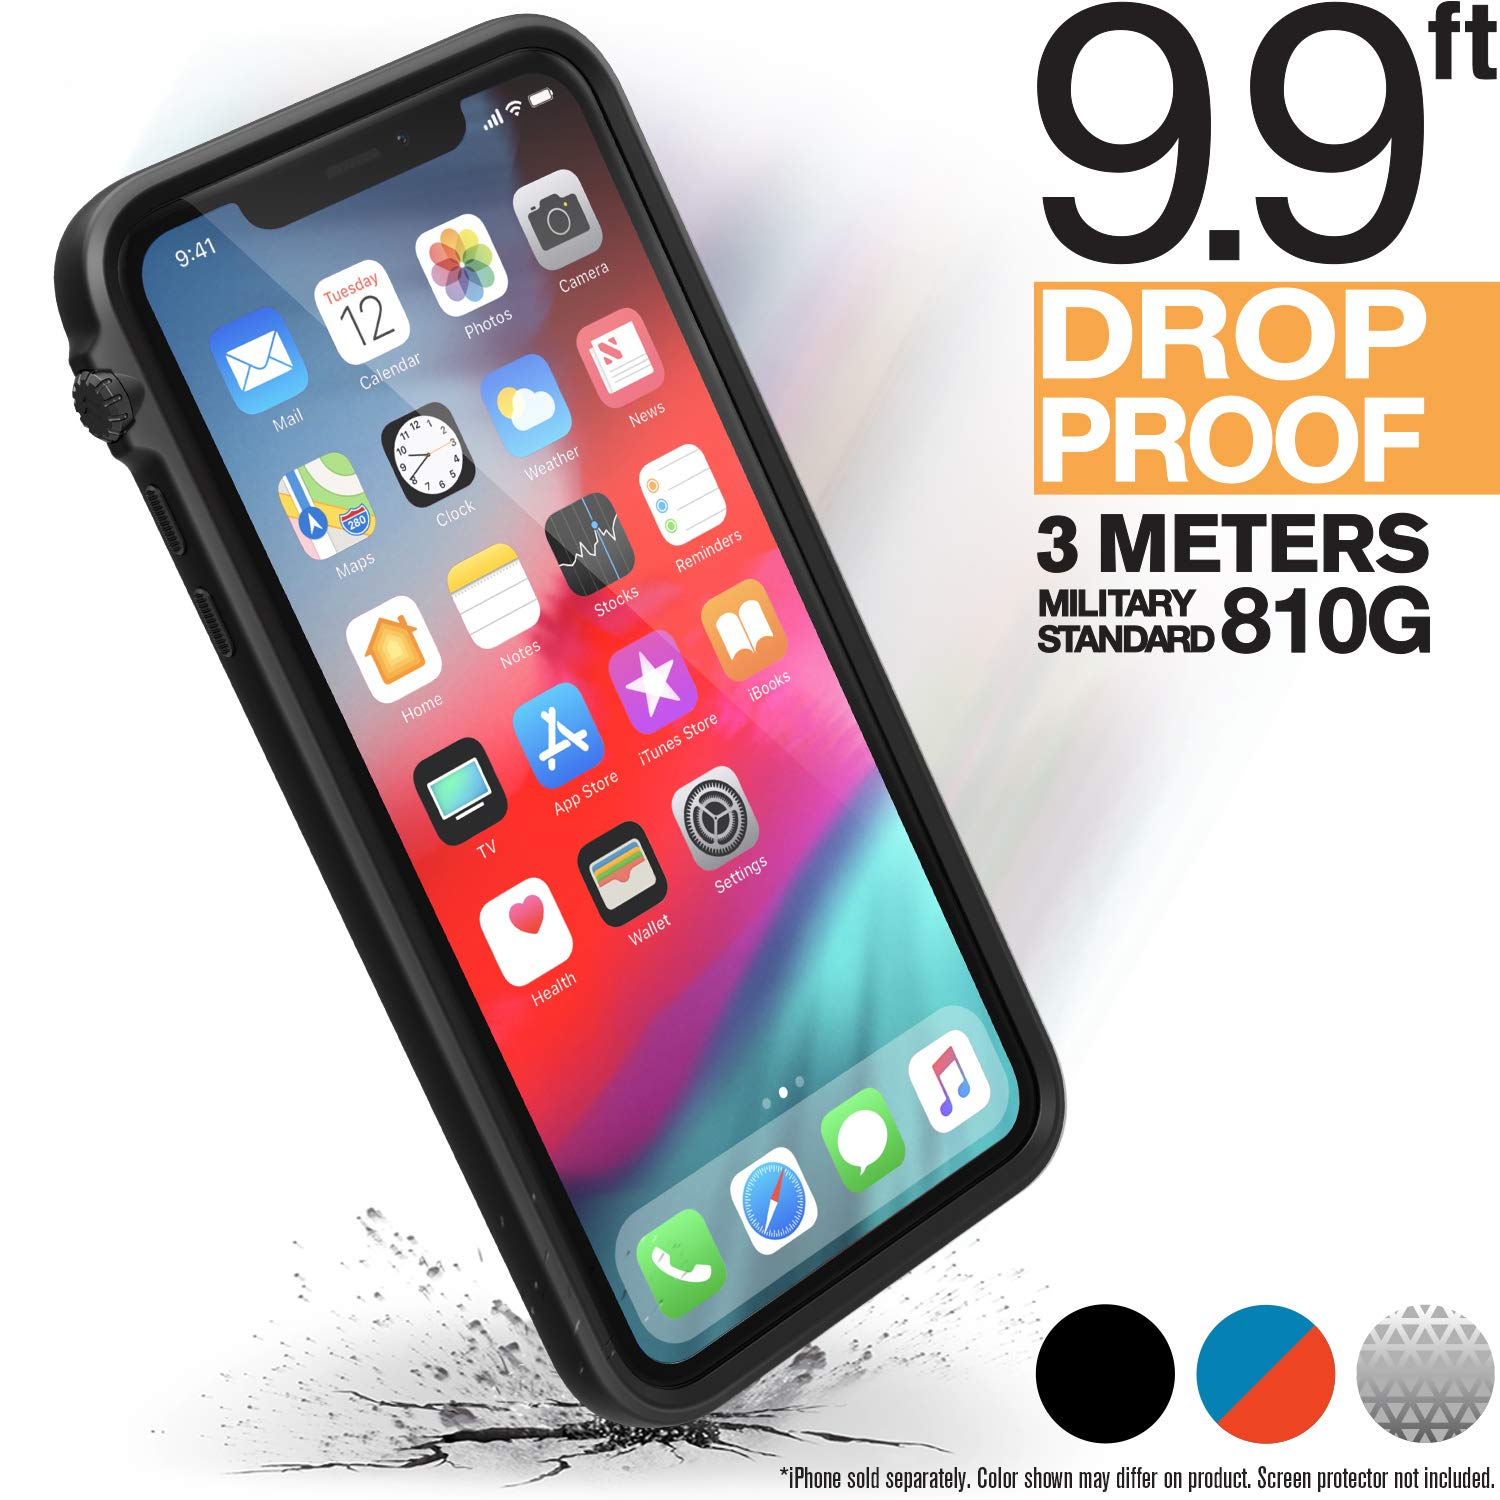 Catalyst iPhone Xs Max Case Impact Protection, Military Grade Drop and Shock Proof Premium Material Quality, Slim Design, Stealth Black by Catalyst